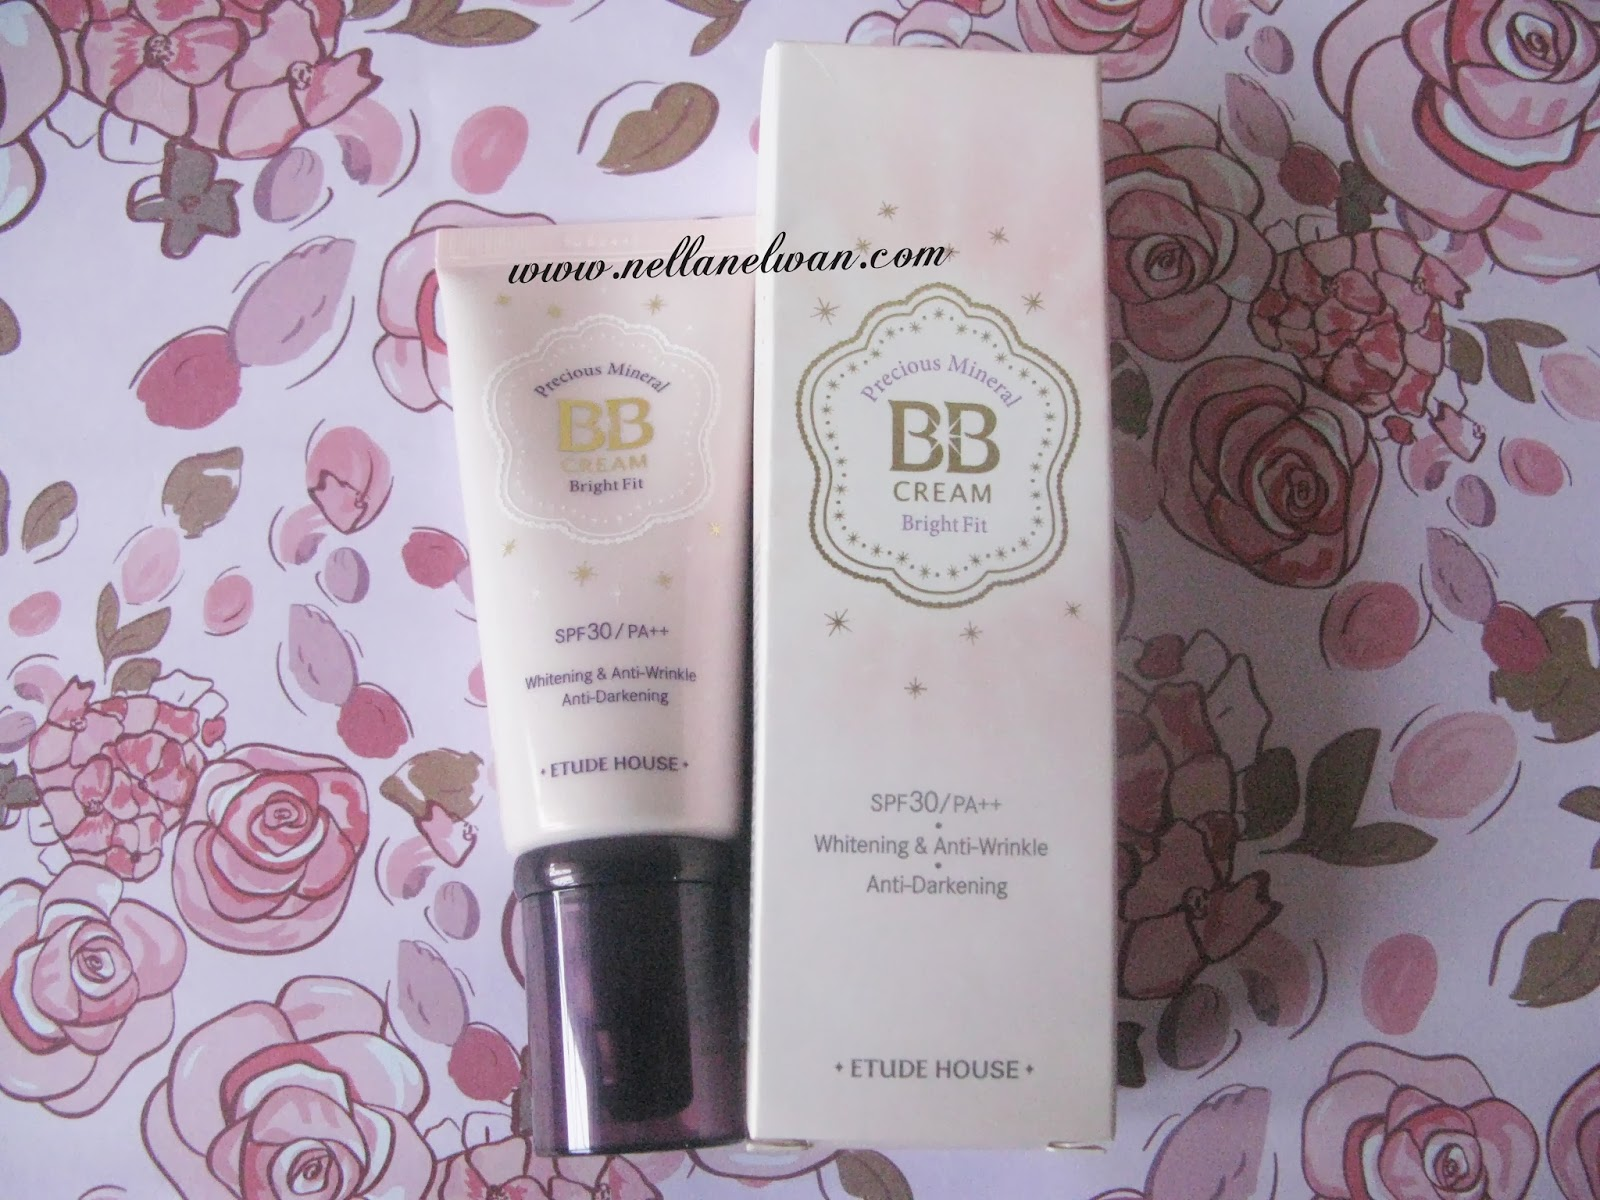 review etude house precious mineral bb cream bright fit